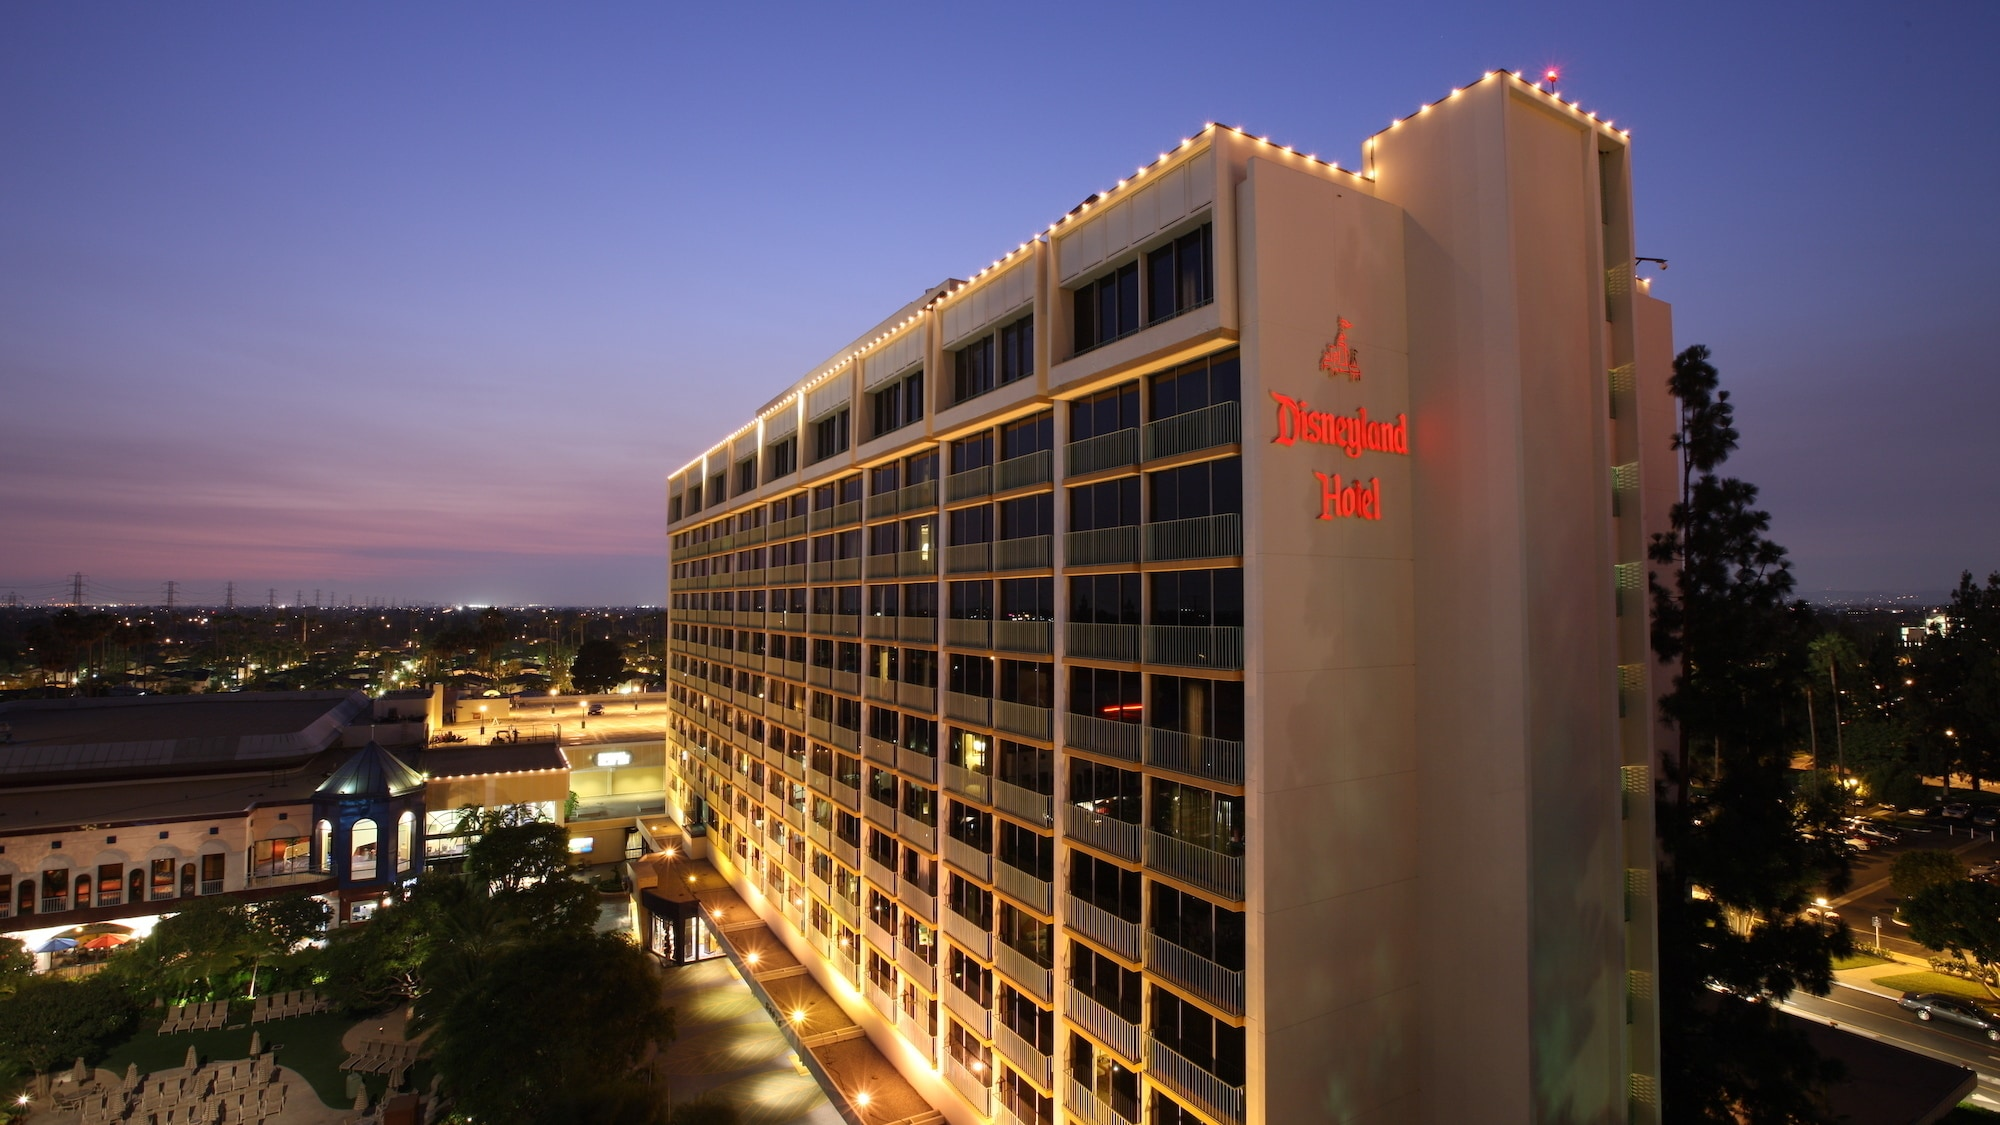 Exterior view of the Disneyland Hotel at dusk.